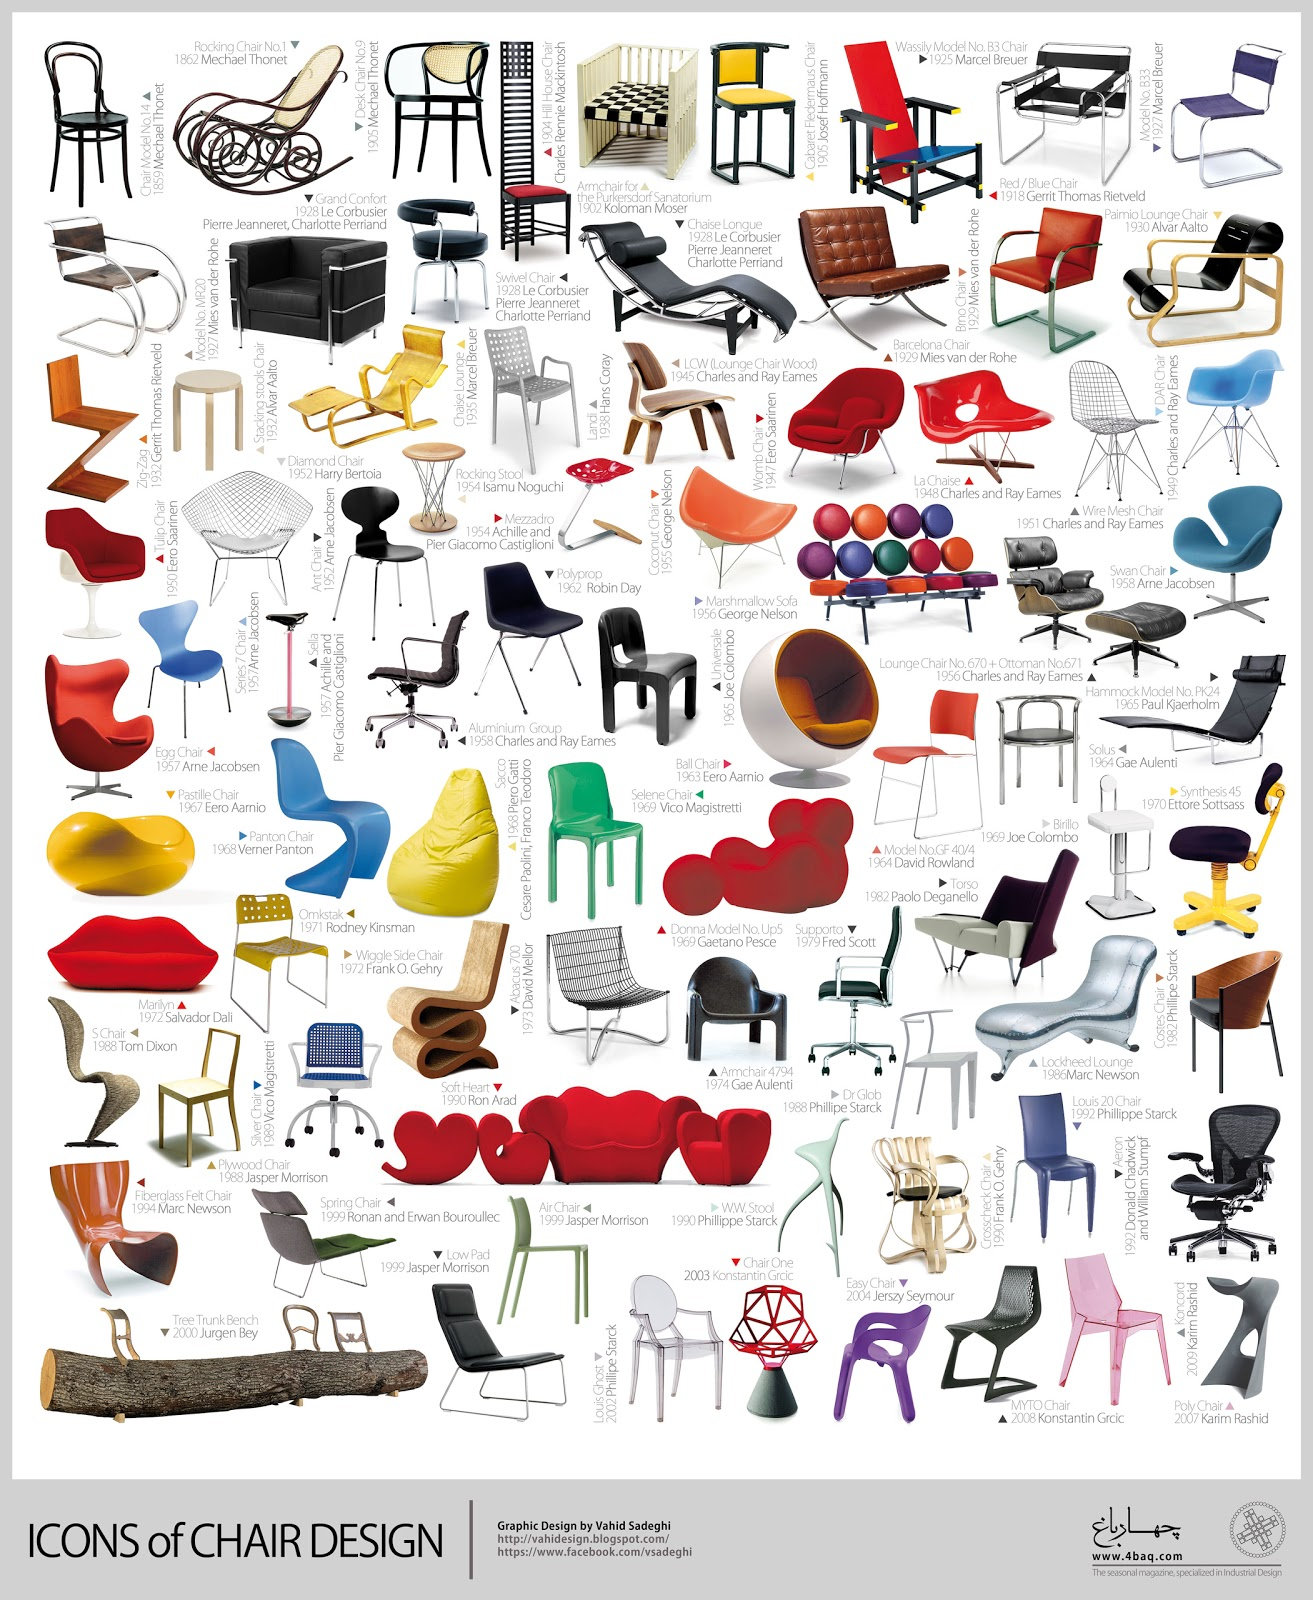 Icons of chair design vahid sadeghi for Design icon chairs